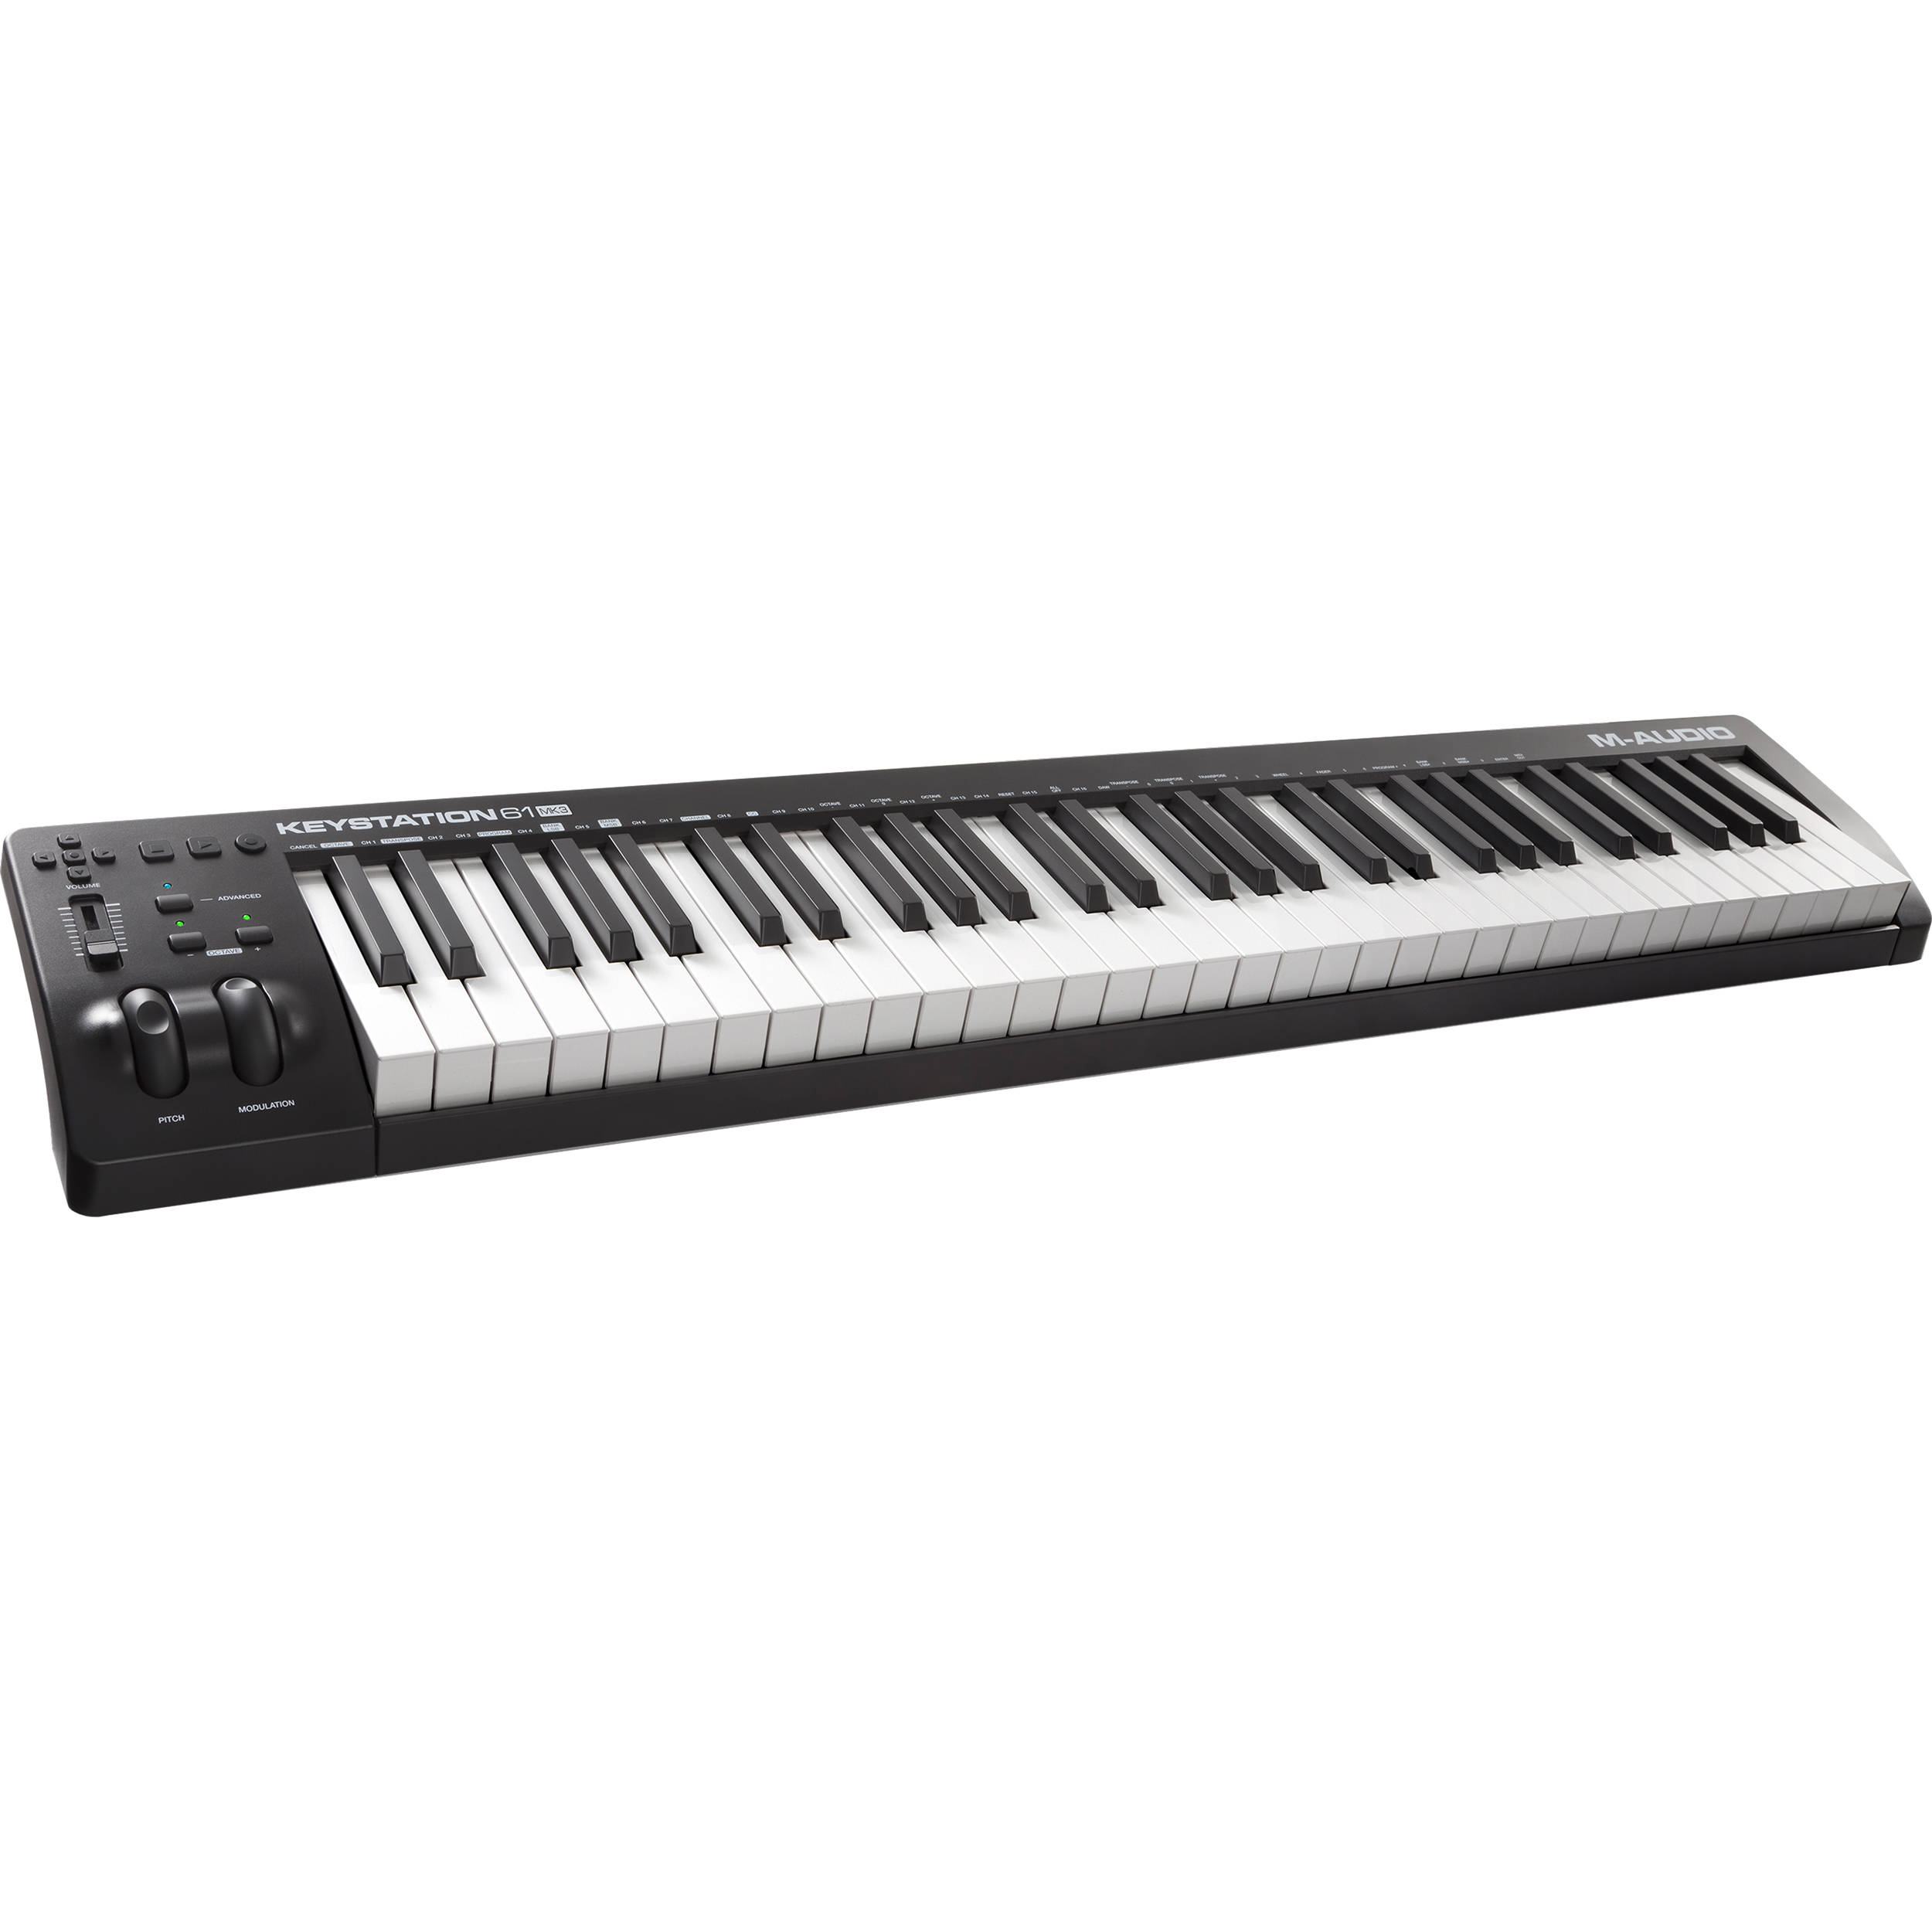 m audio keystation 61 mk3 61 key usb powered keystation 61 mk3. Black Bedroom Furniture Sets. Home Design Ideas